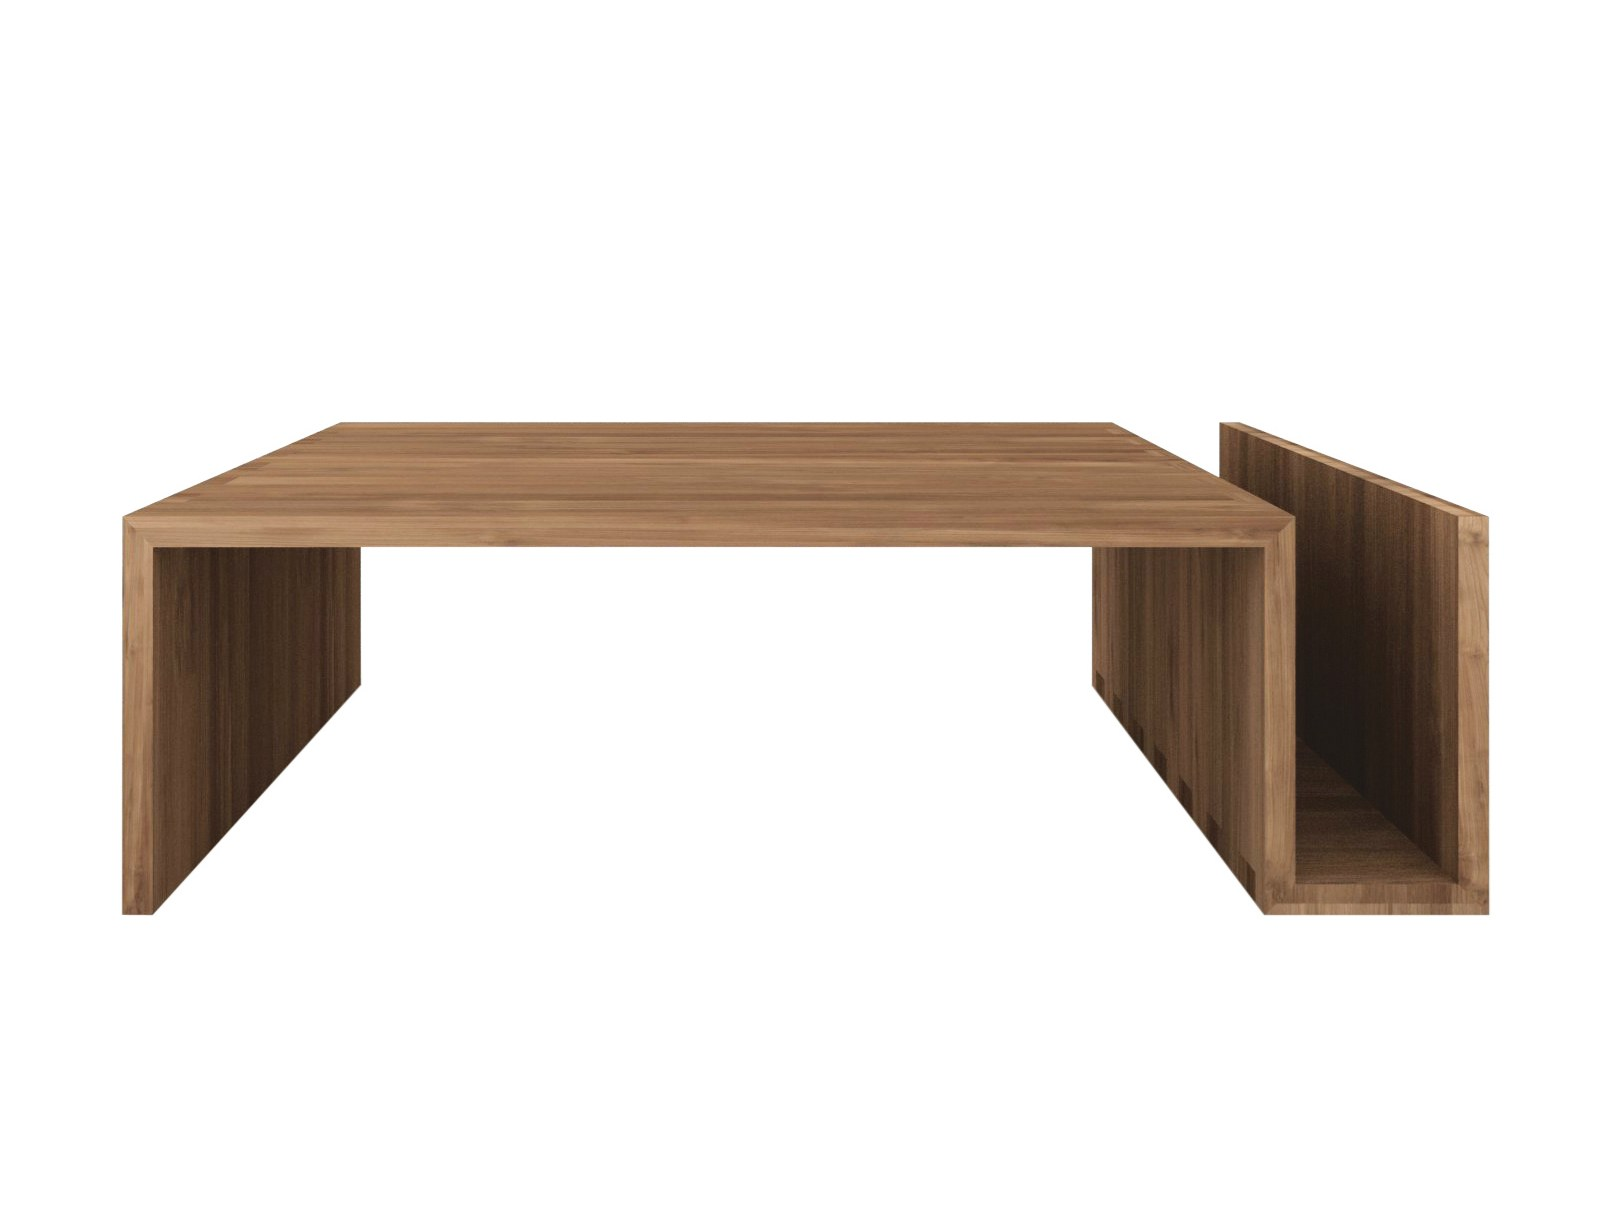 TEAK KUBUS Coffee table by Ethnicraft : prodotti 170526 rel99e37c77cd764d6e858068638184d182 from www.archiproducts.com size 1621 x 1216 jpeg 87kB